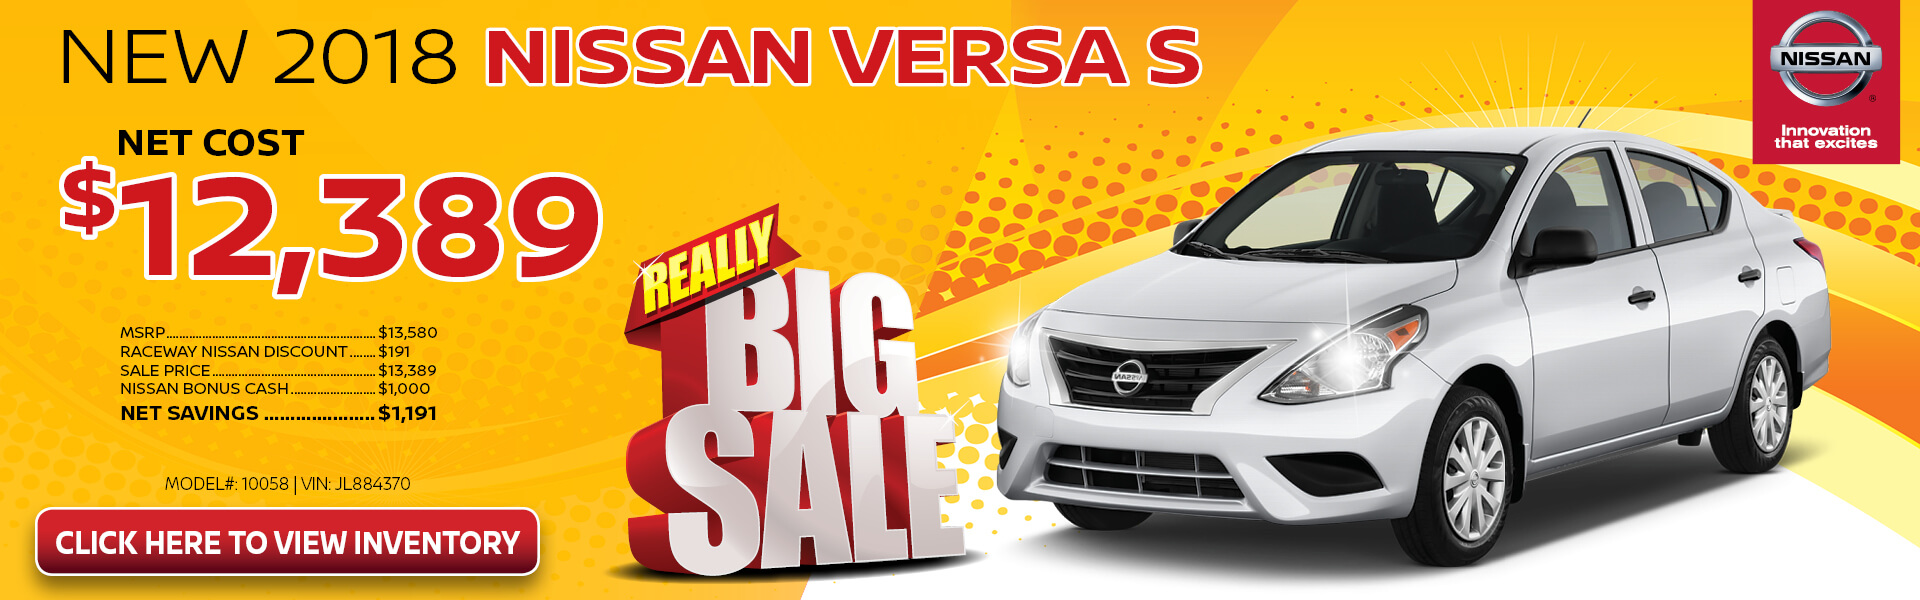 Nissan Versa $12,389 Purchase